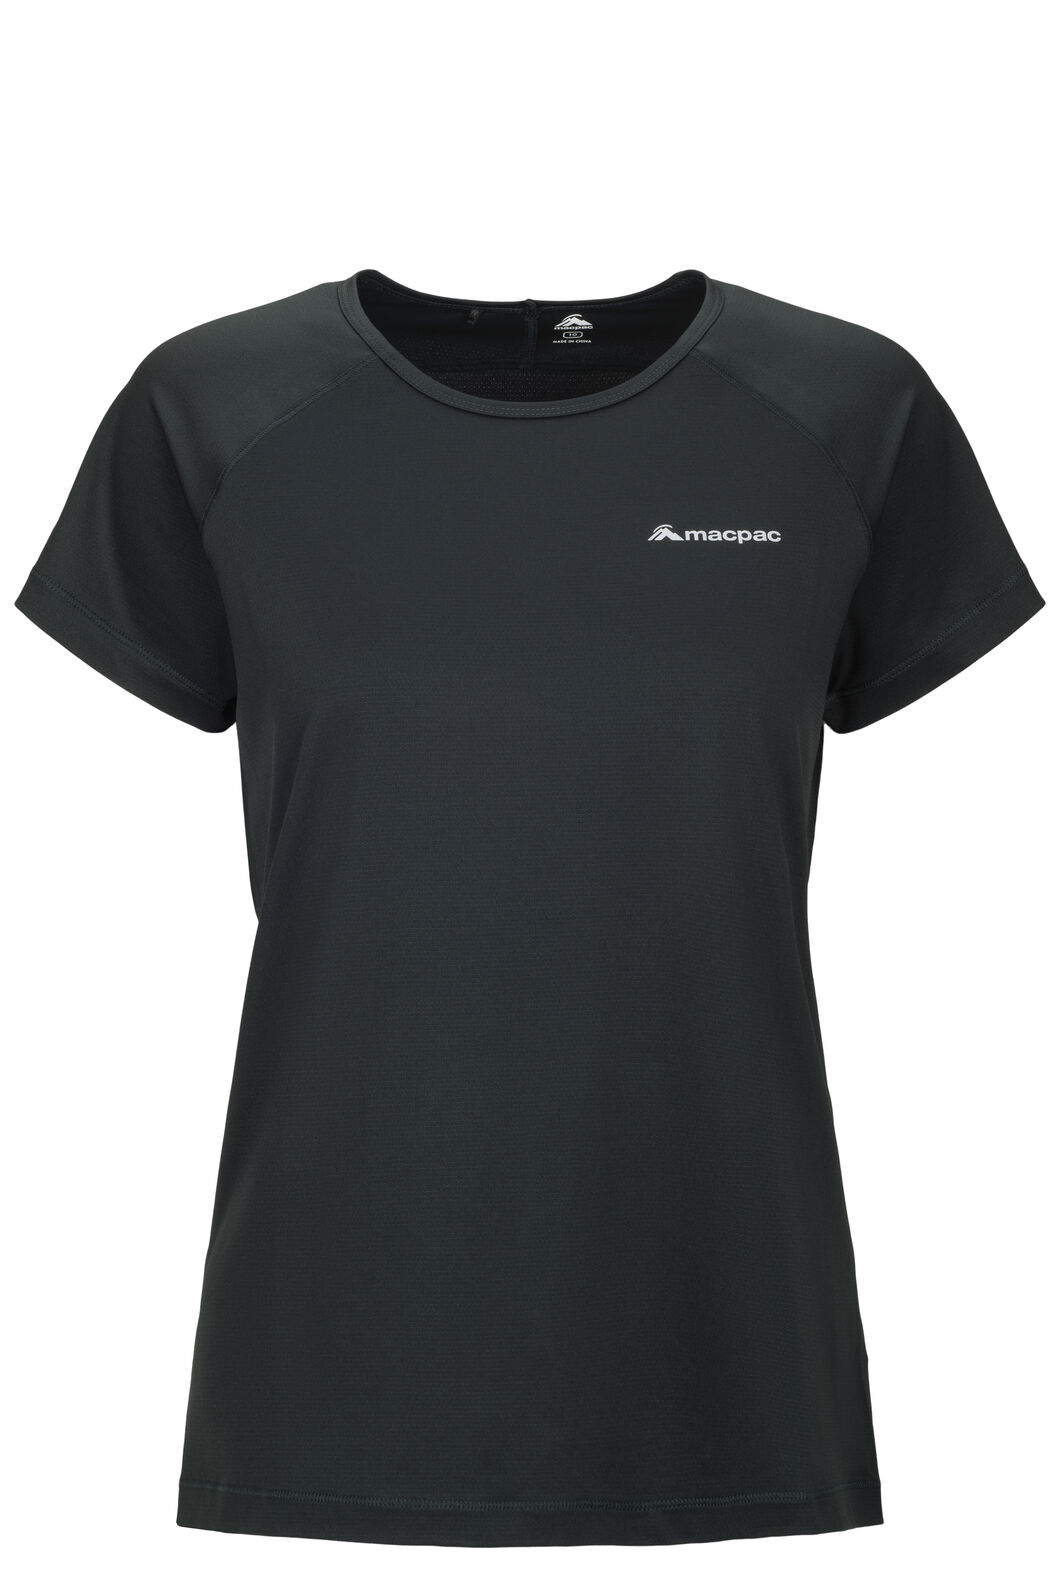 Macpac Eyre Short Sleeve Tee — Women's, True Black, hi-res